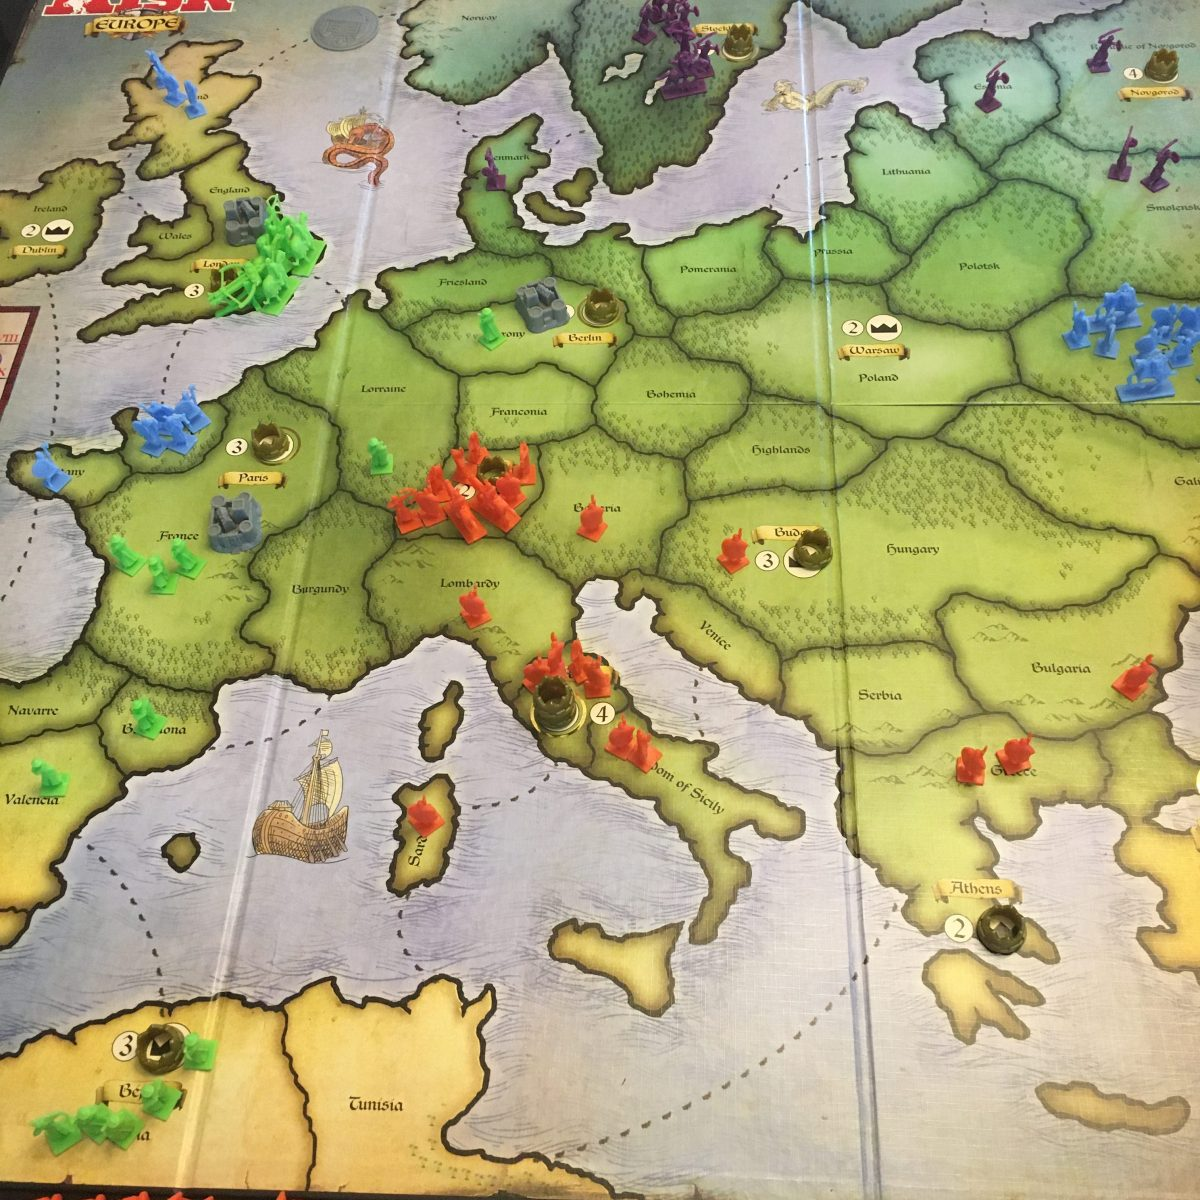 Turn 5 - Green takes UK, Red goes North, Purple just chillin'